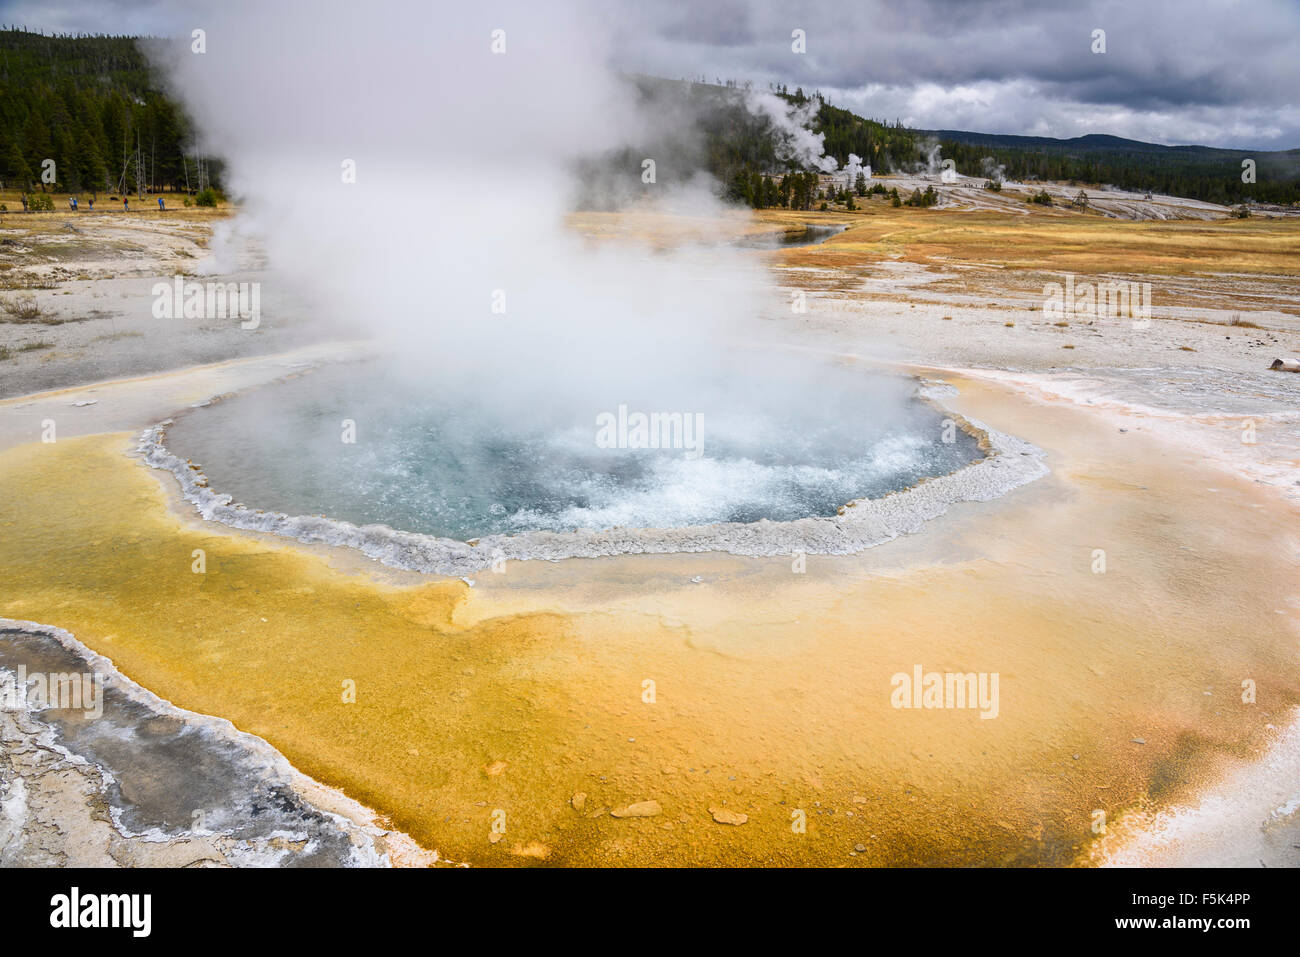 Crested Pool, Upper Geyser Basin, Yellowstone National Park, Wyoming, USA - Stock Image